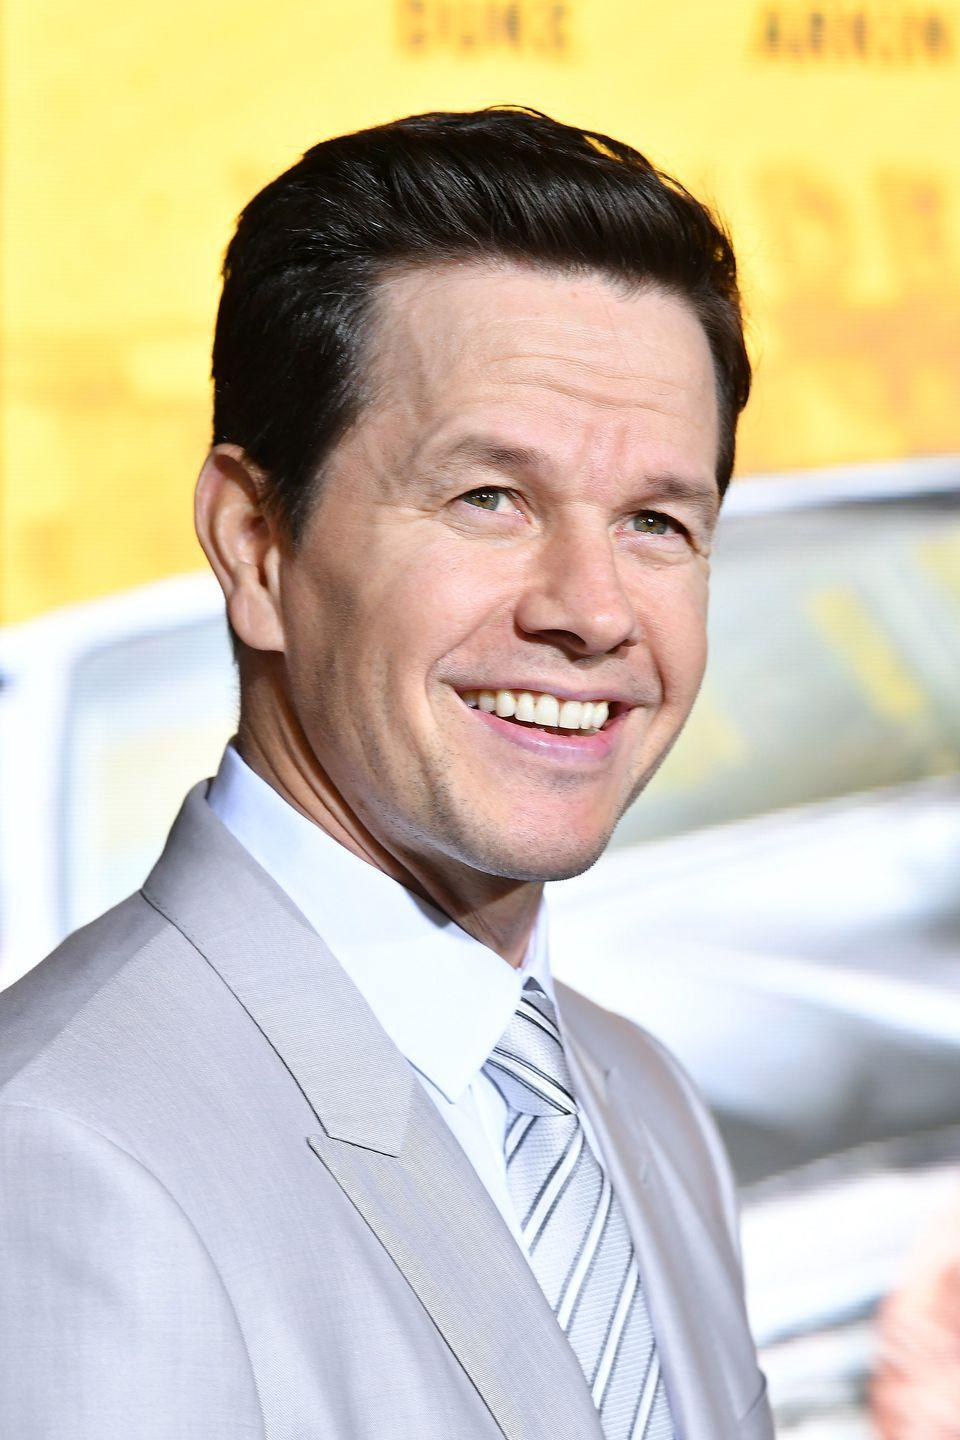 """<p>Wahlberg dislikes his role in <em>Boogie Nights </em>so much that he has literally begged God for forgiveness just for doing it. In the film, Wahlberg plays Dirk Diggler, an A-list porn star. When speaking about it to <a href=""""https://www.chicagotribune.com/news/ct-met-cupich-wahlberg-1022-chicago-inc-20171020-story.html"""" rel=""""nofollow noopener"""" target=""""_blank"""" data-ylk=""""slk:Chicago Inc."""" class=""""link rapid-noclick-resp"""">Chicago Inc.</a>, he said, """"I just always hope that God is a movie fan and also forgiving because I've made some poor choices in my past."""" He added, """"<em>Boogie Nights</em> is up there at the top of the list.""""</p>"""